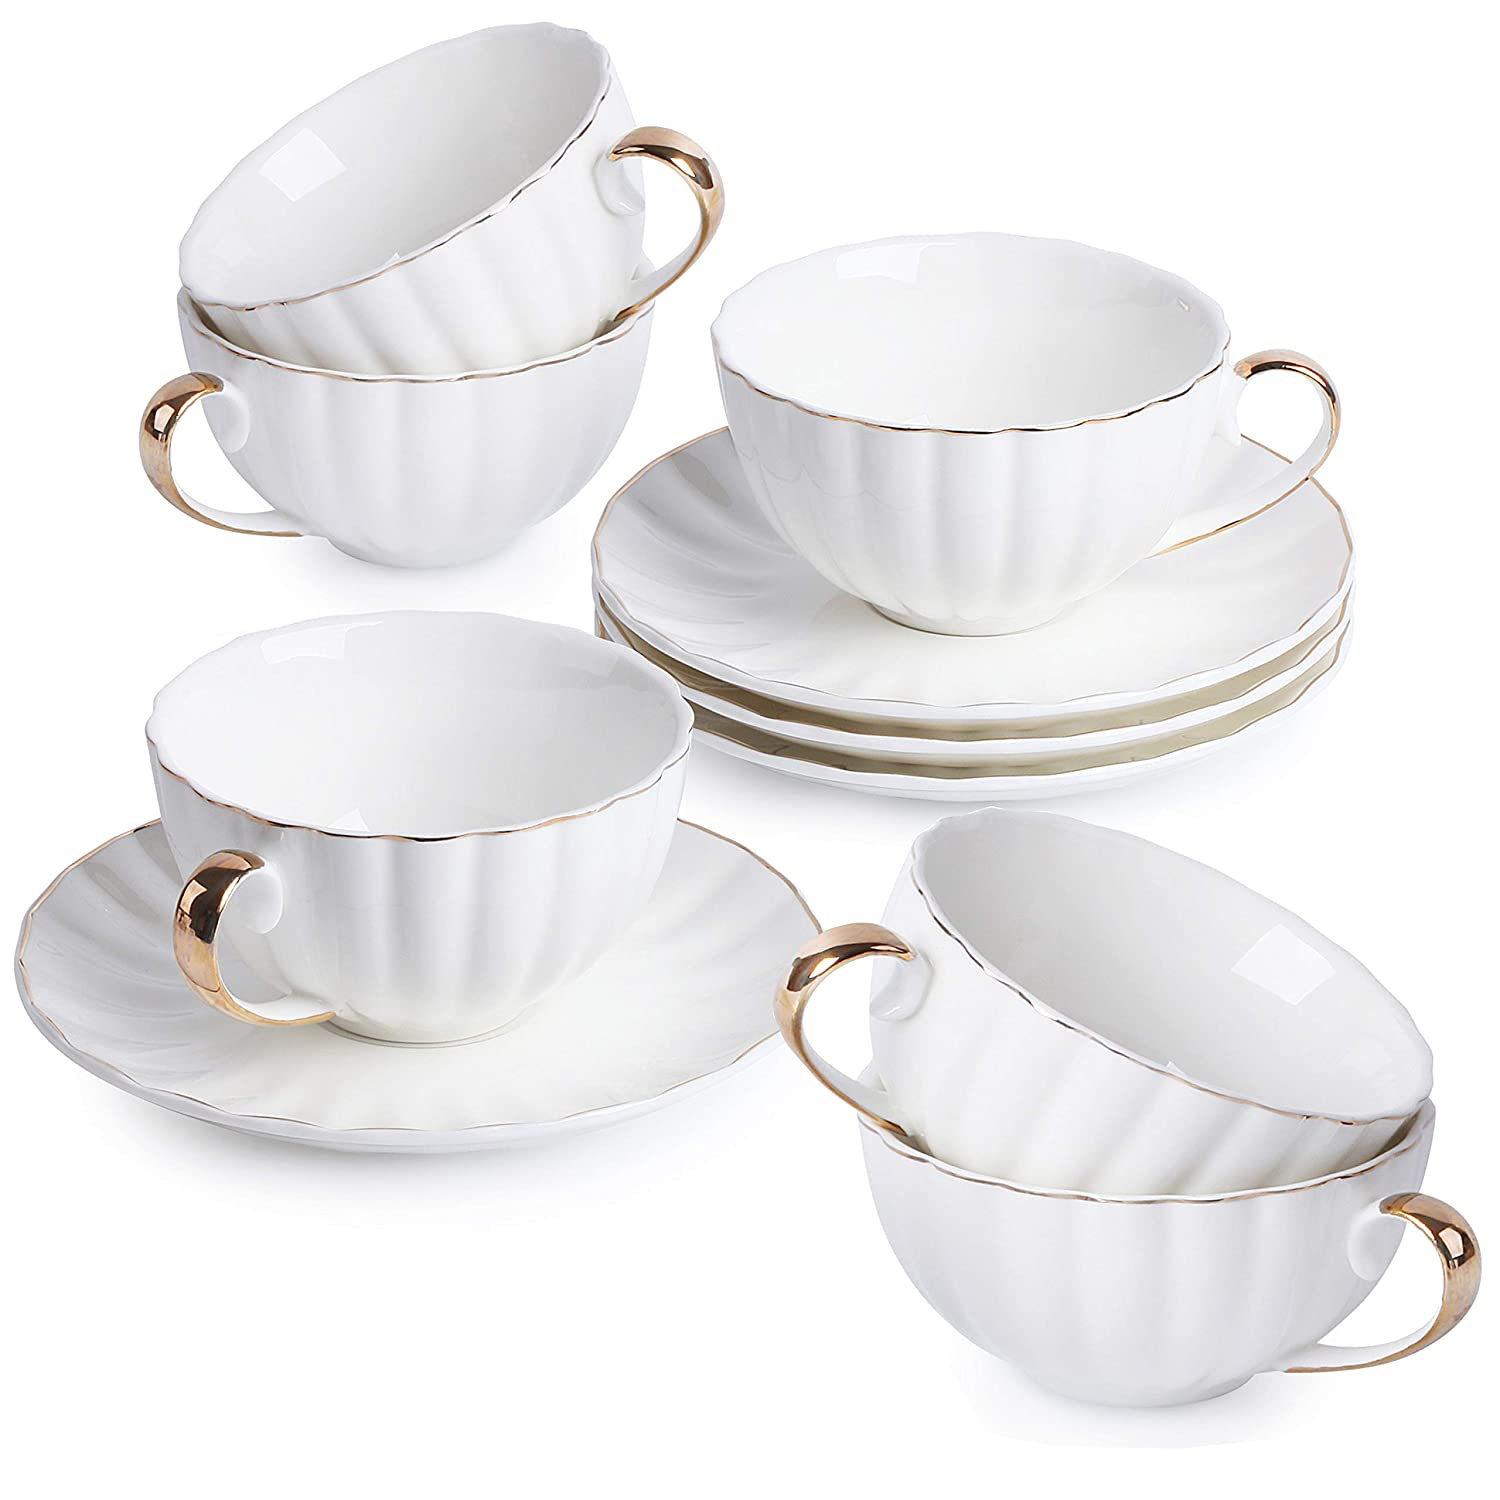 Amazoncom Btät Tea Cups And Saucers Set Of 6 7 Oz With Gold